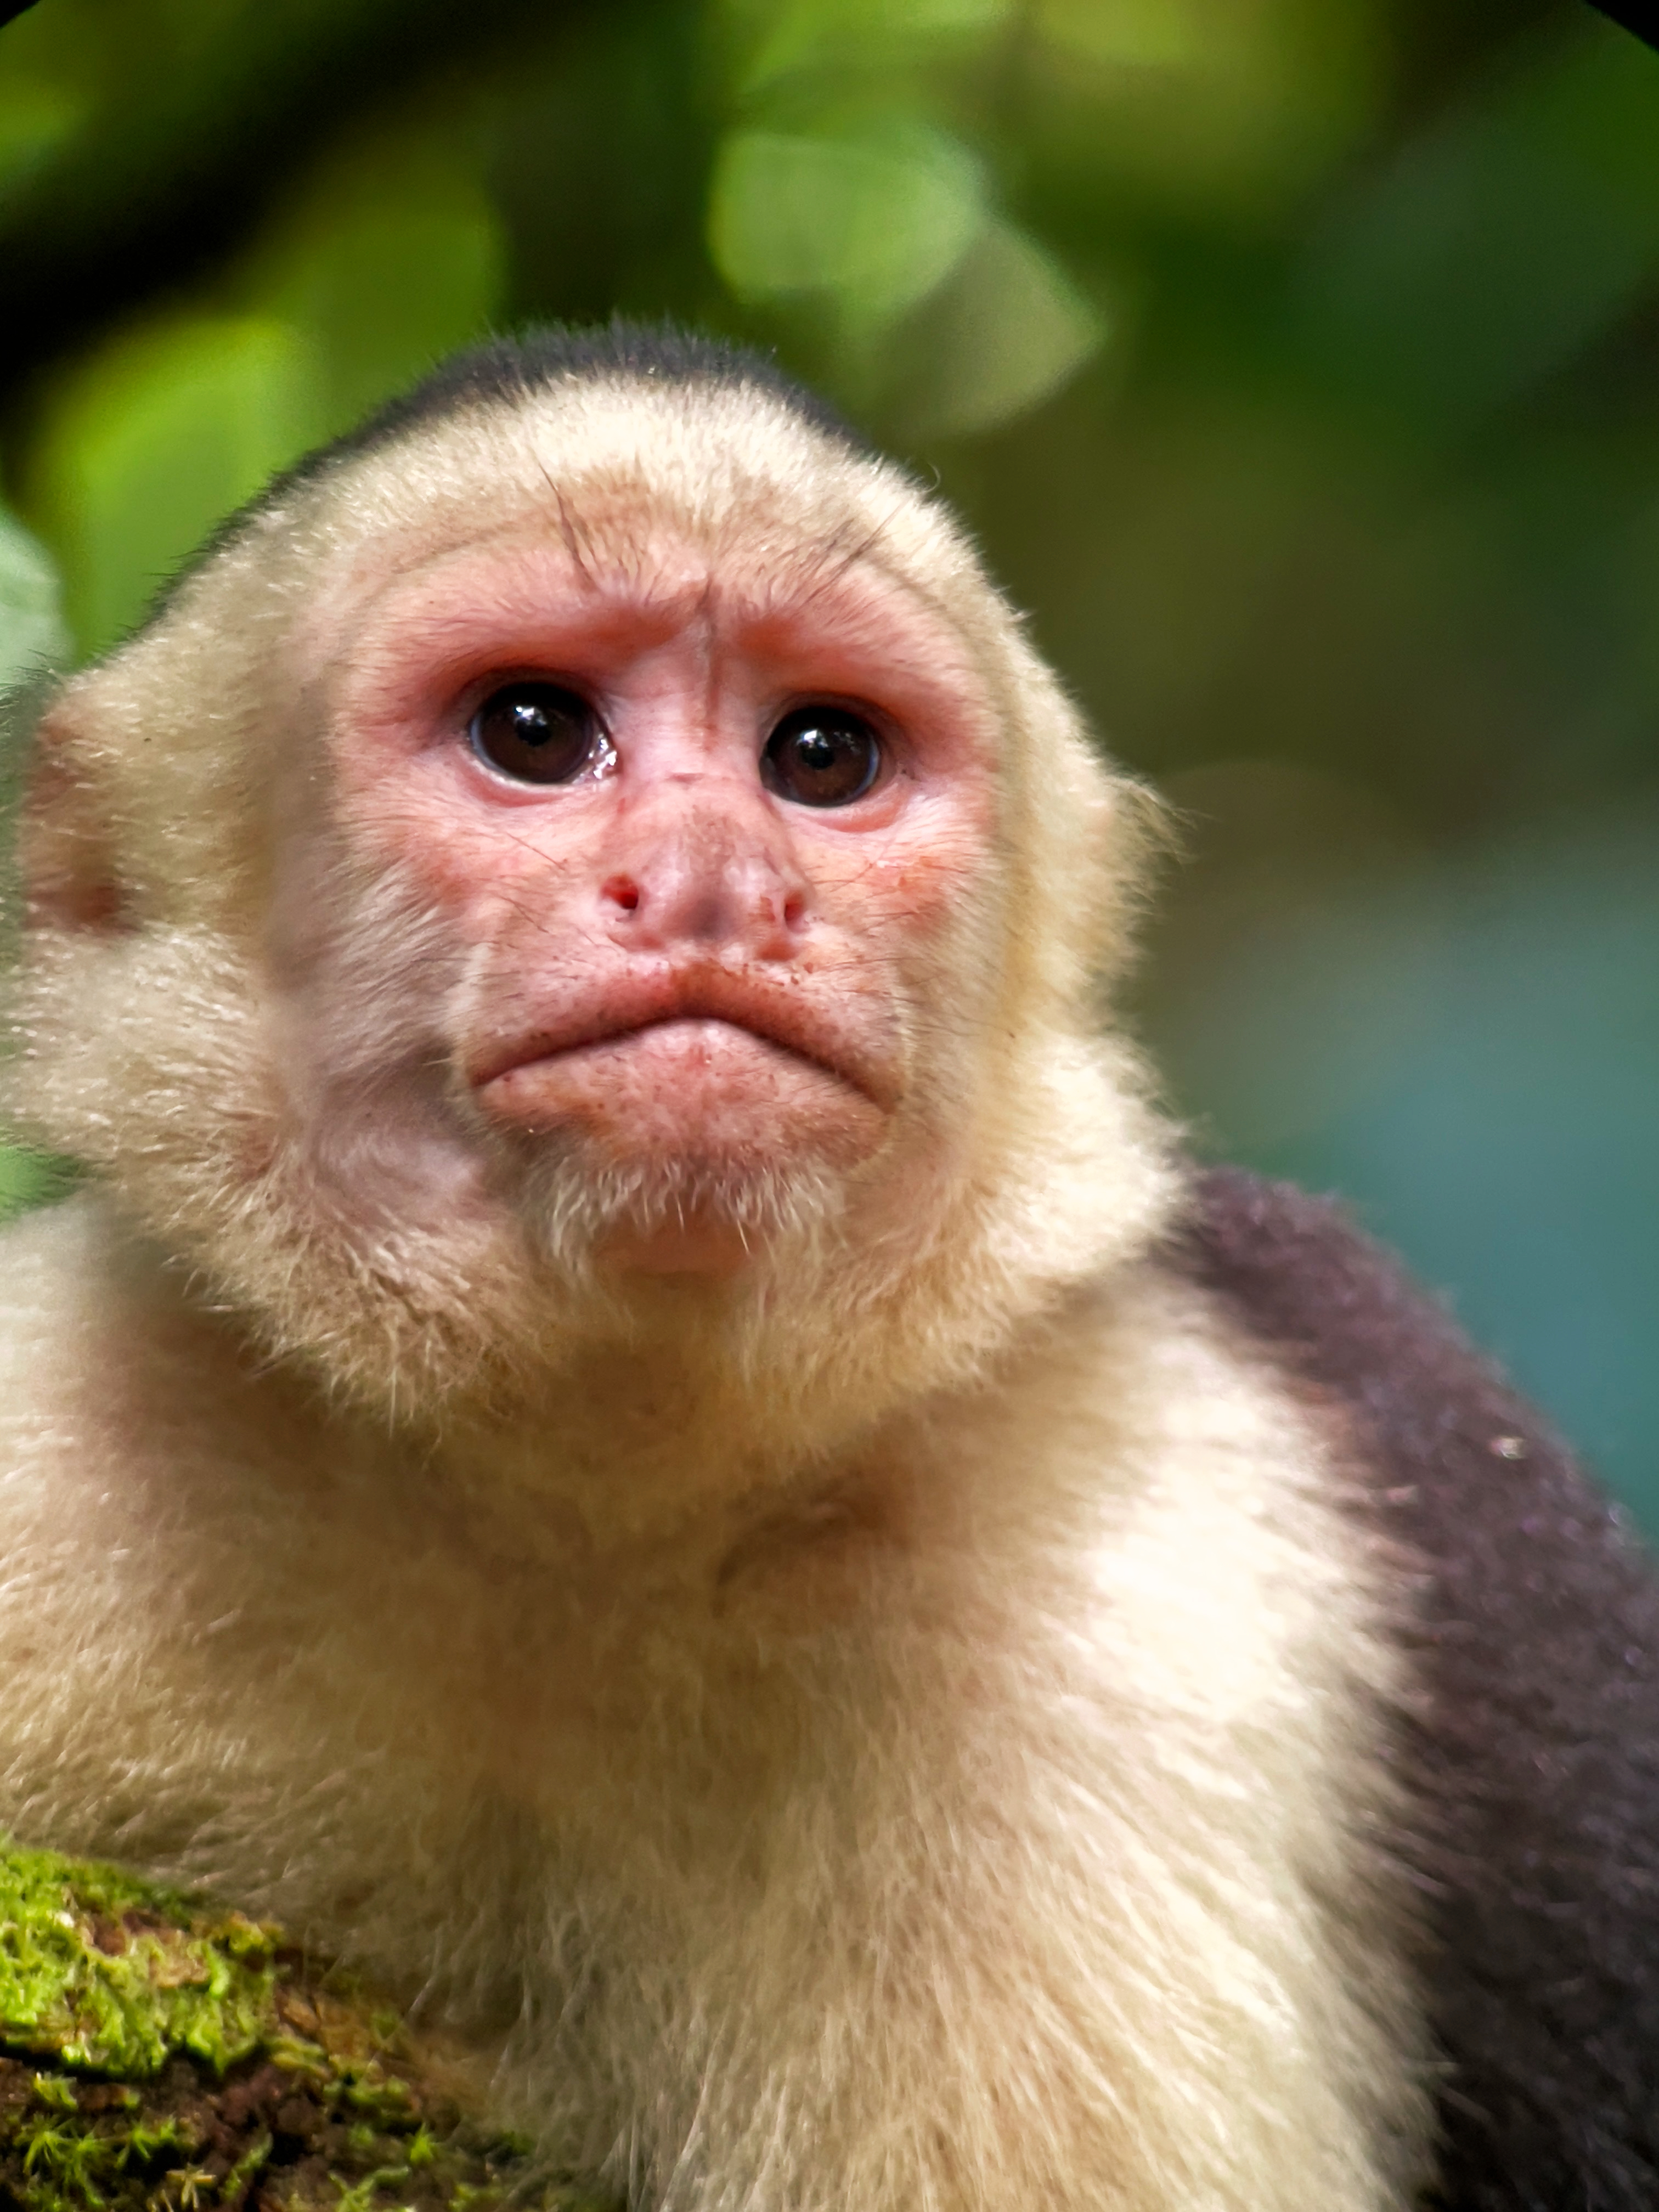 3 types of monkeys could be spot